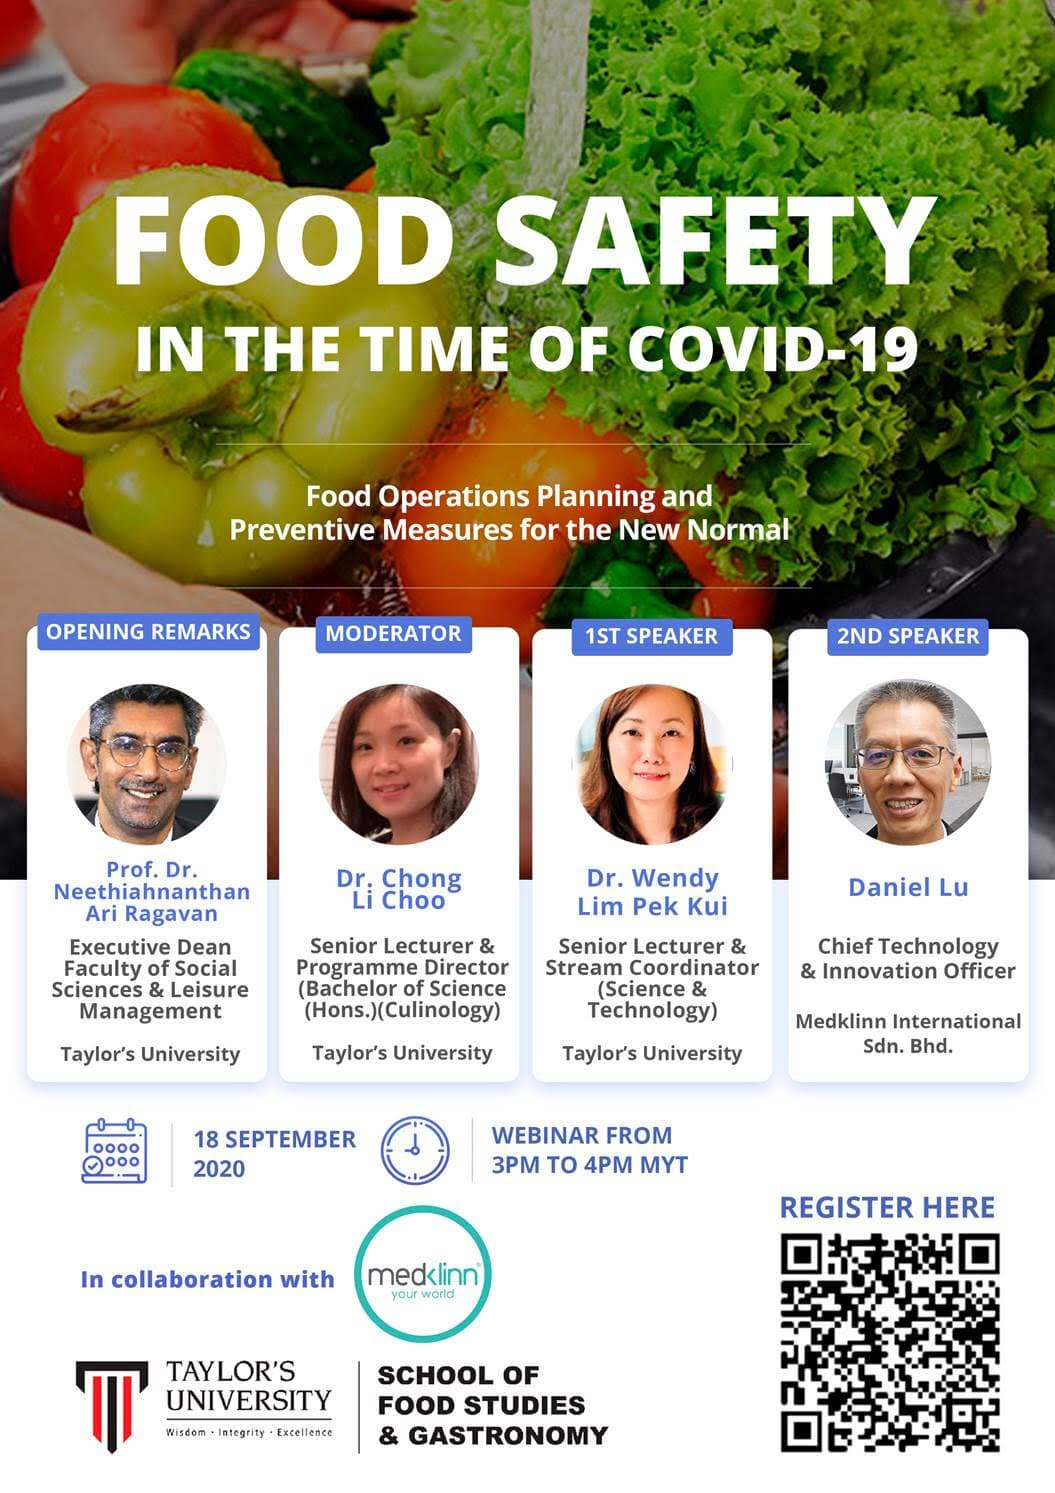 FOOD SAFETY IN THE TIME OF COVID-19